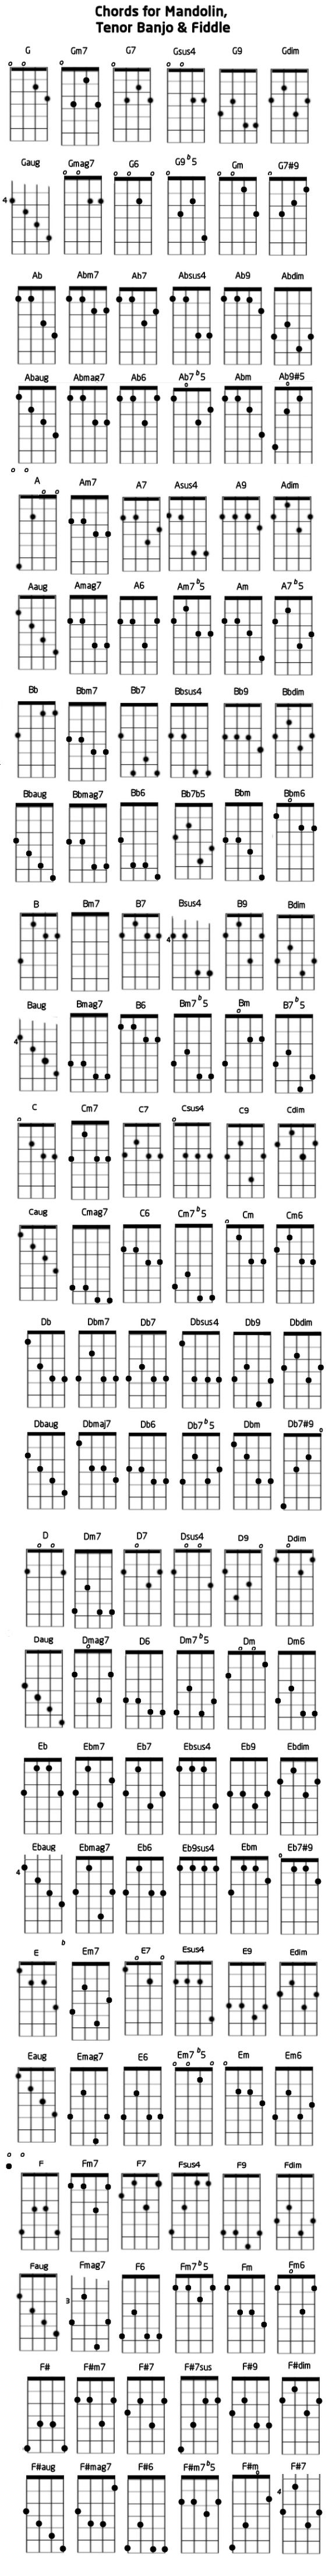 Mandolin tenor banjo chords mandolin banjo and guitars chord sheet full jan 2013 majesticvision hexwebz Images